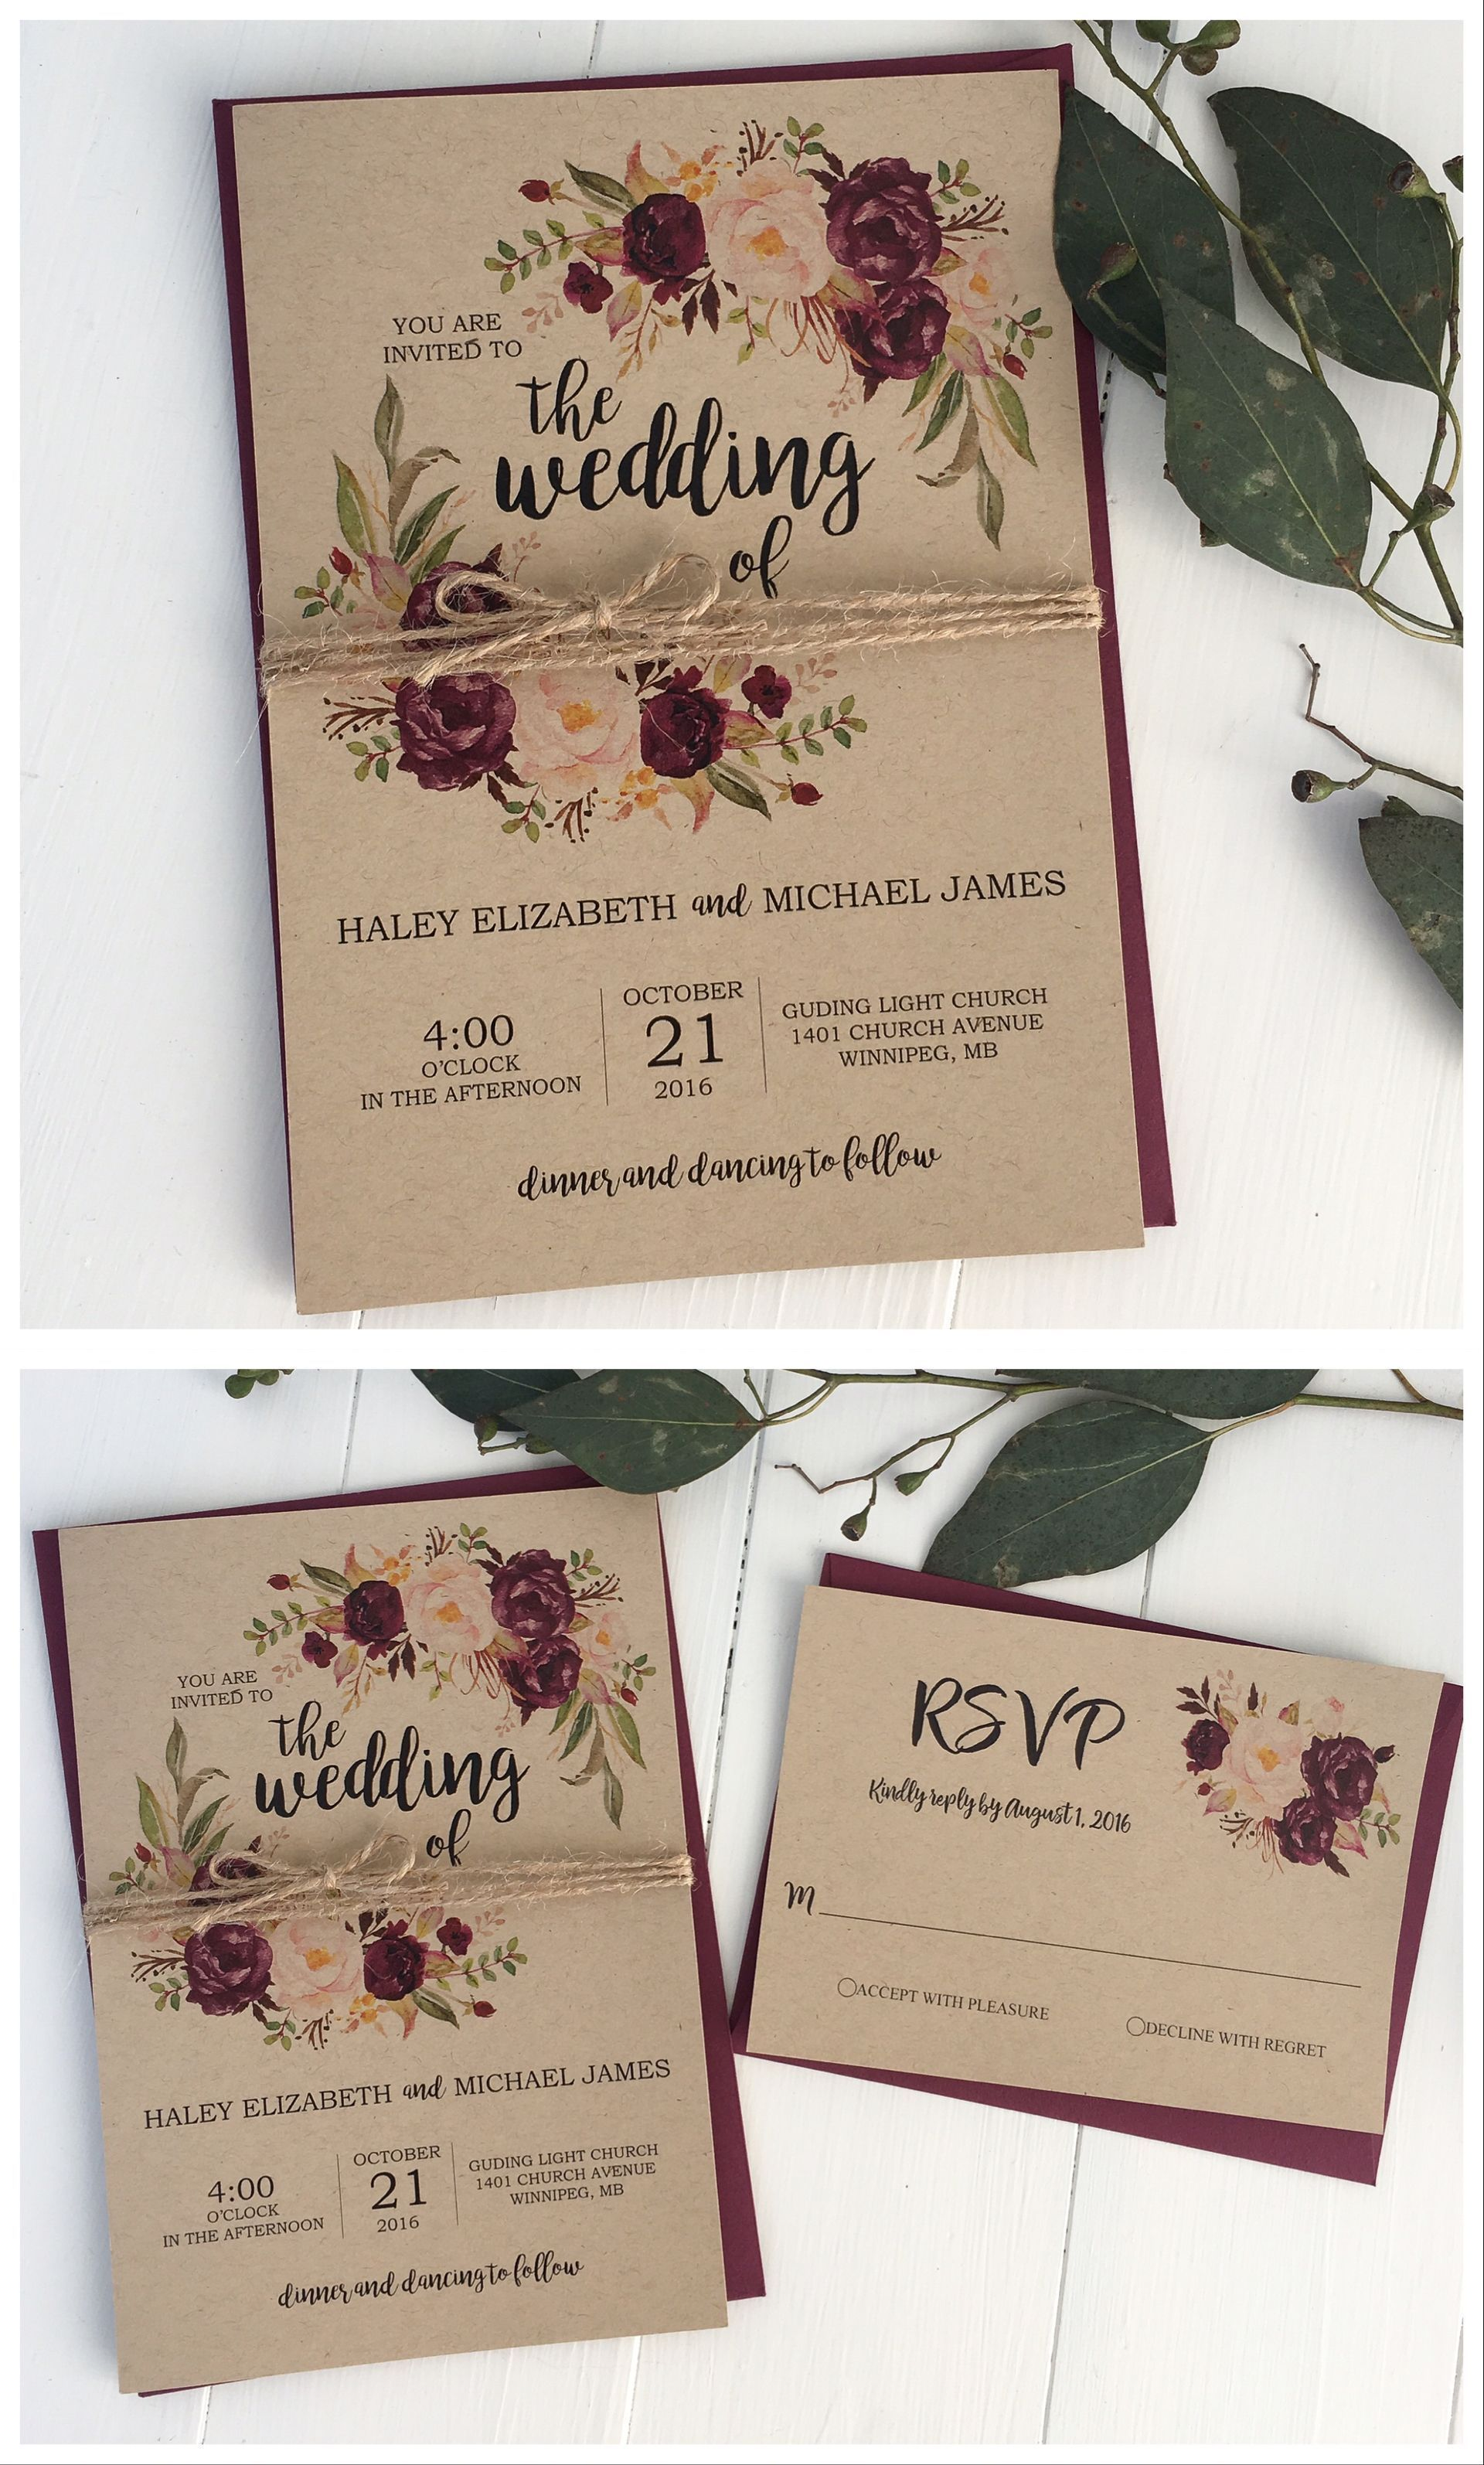 sister wedding invitation card wordings%0A Rustic Country Wedding Invitation   Autumn Leaves on Faux Burlap  PRINTED  Wine Ribbon   Textured background  Autumn colours and Twine